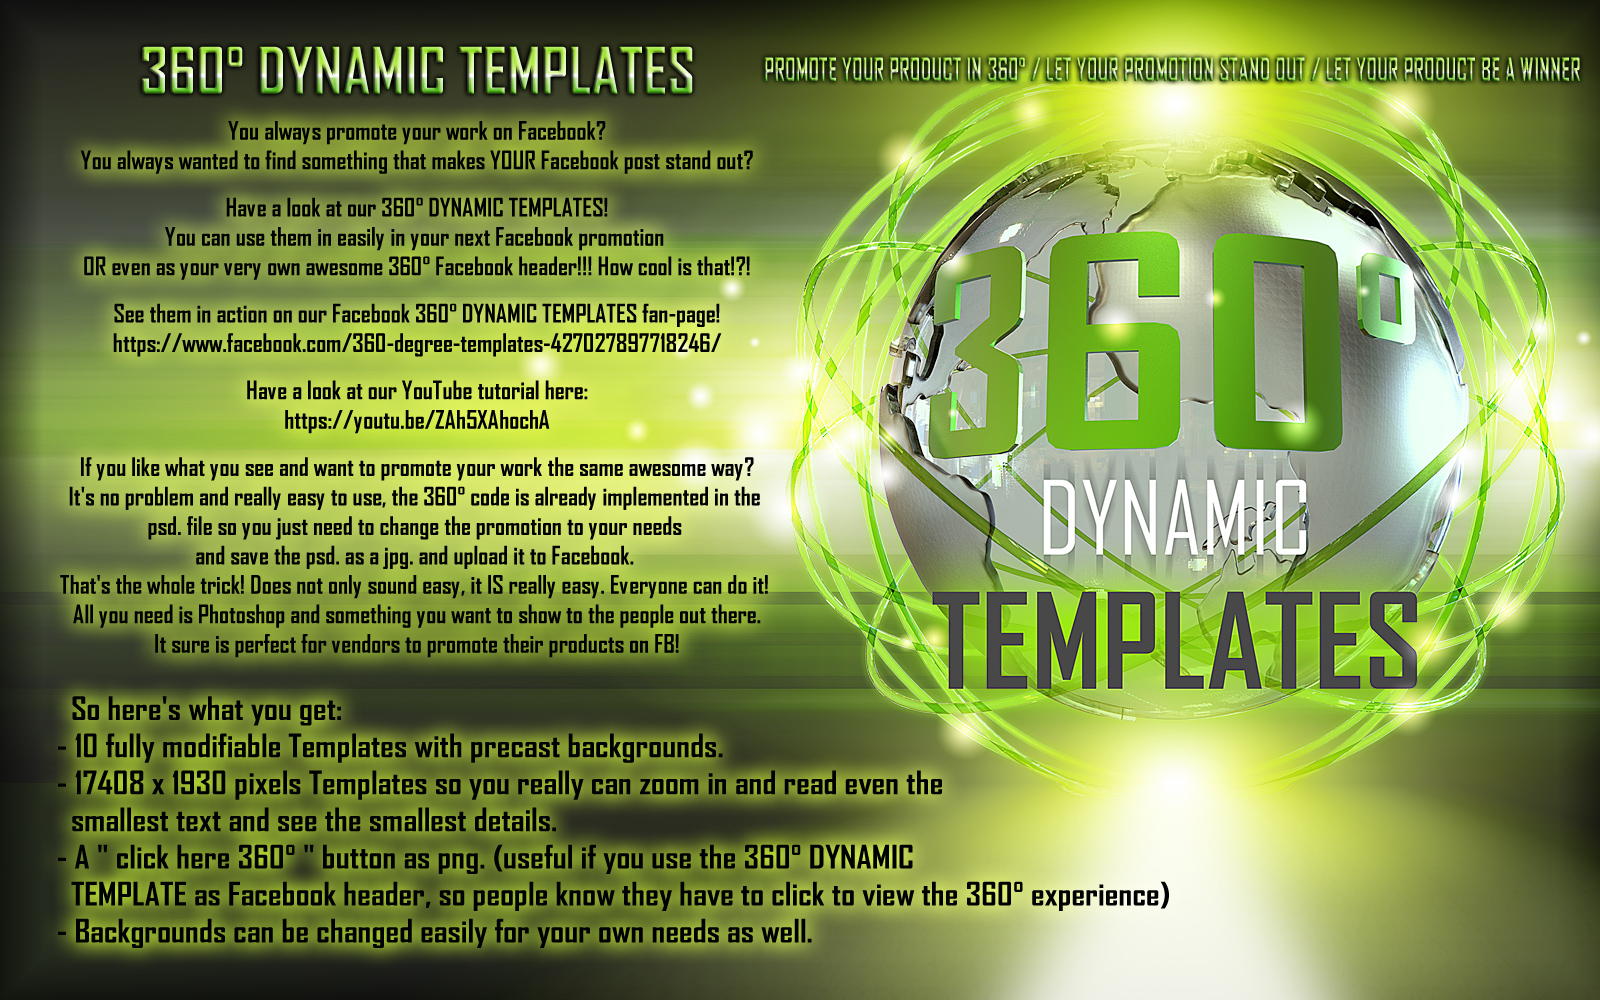 360 Degrees Dynamic Templates